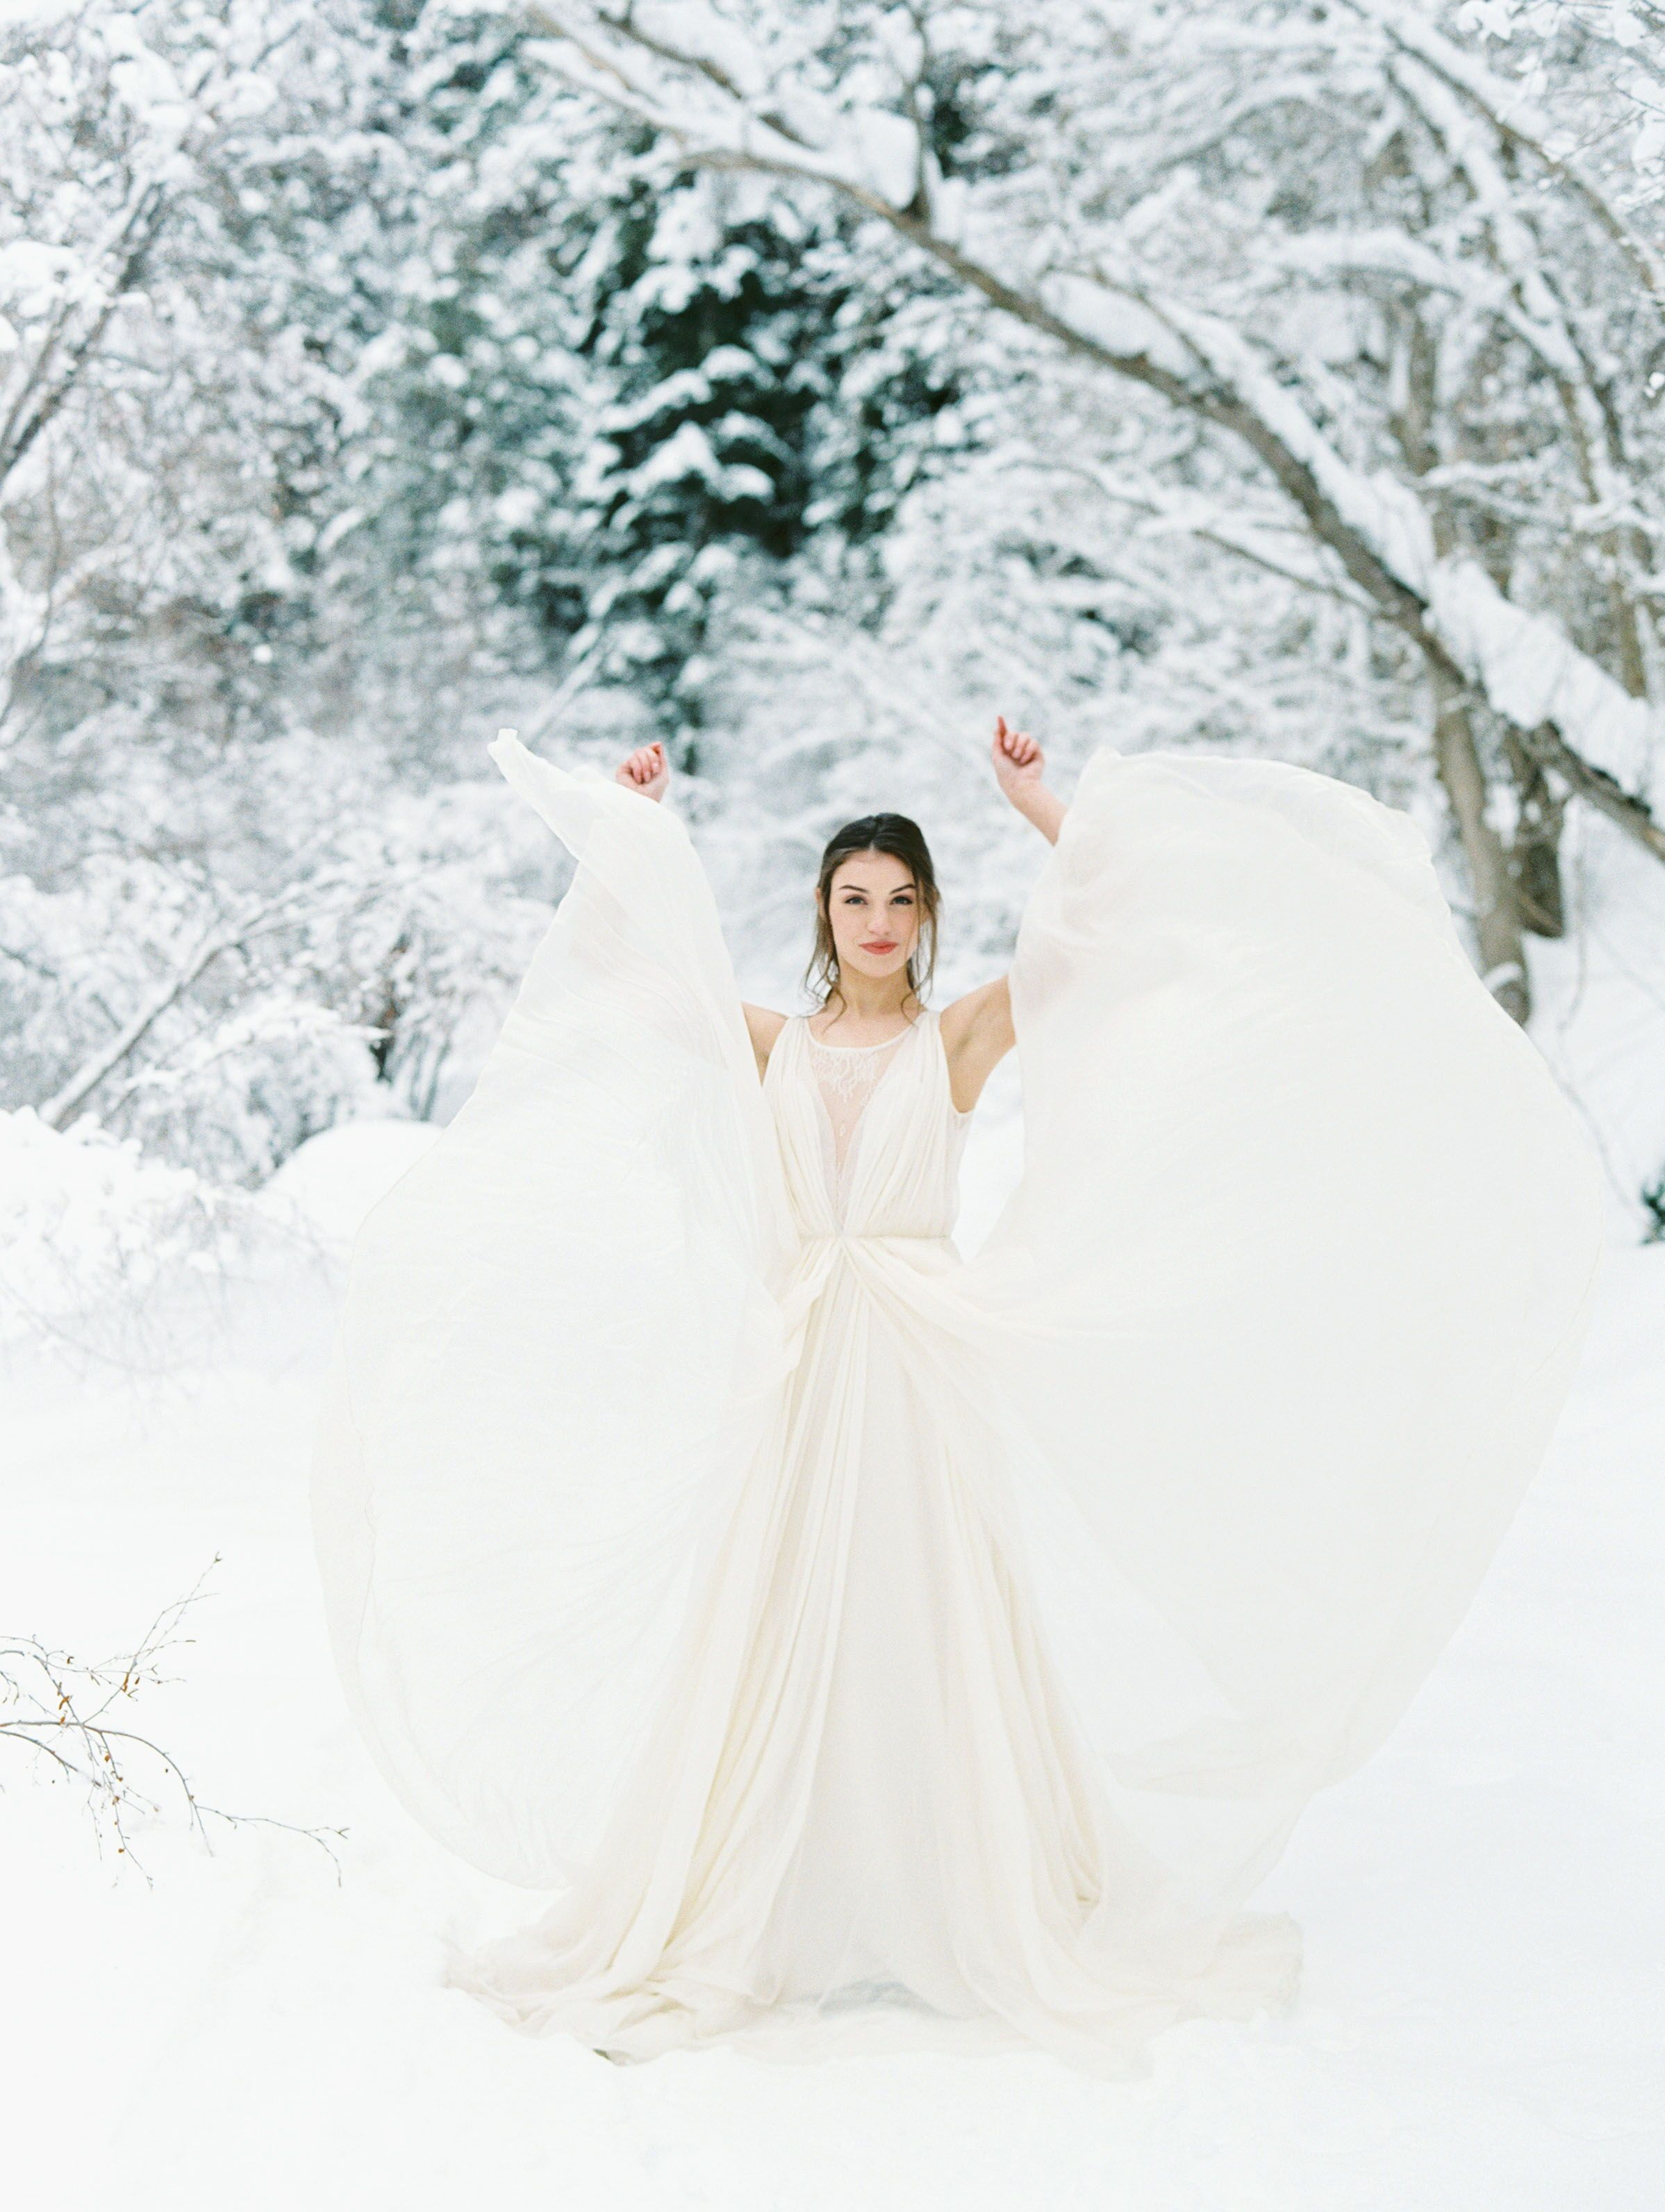 Winter Wedding Romantic Snow Trees Forest Beautiful Attire Outfit Inspiration Aesthe Winter Wedding Brides And Bridesmaids Winter Wedding Inspiration [ 3184 x 2397 Pixel ]